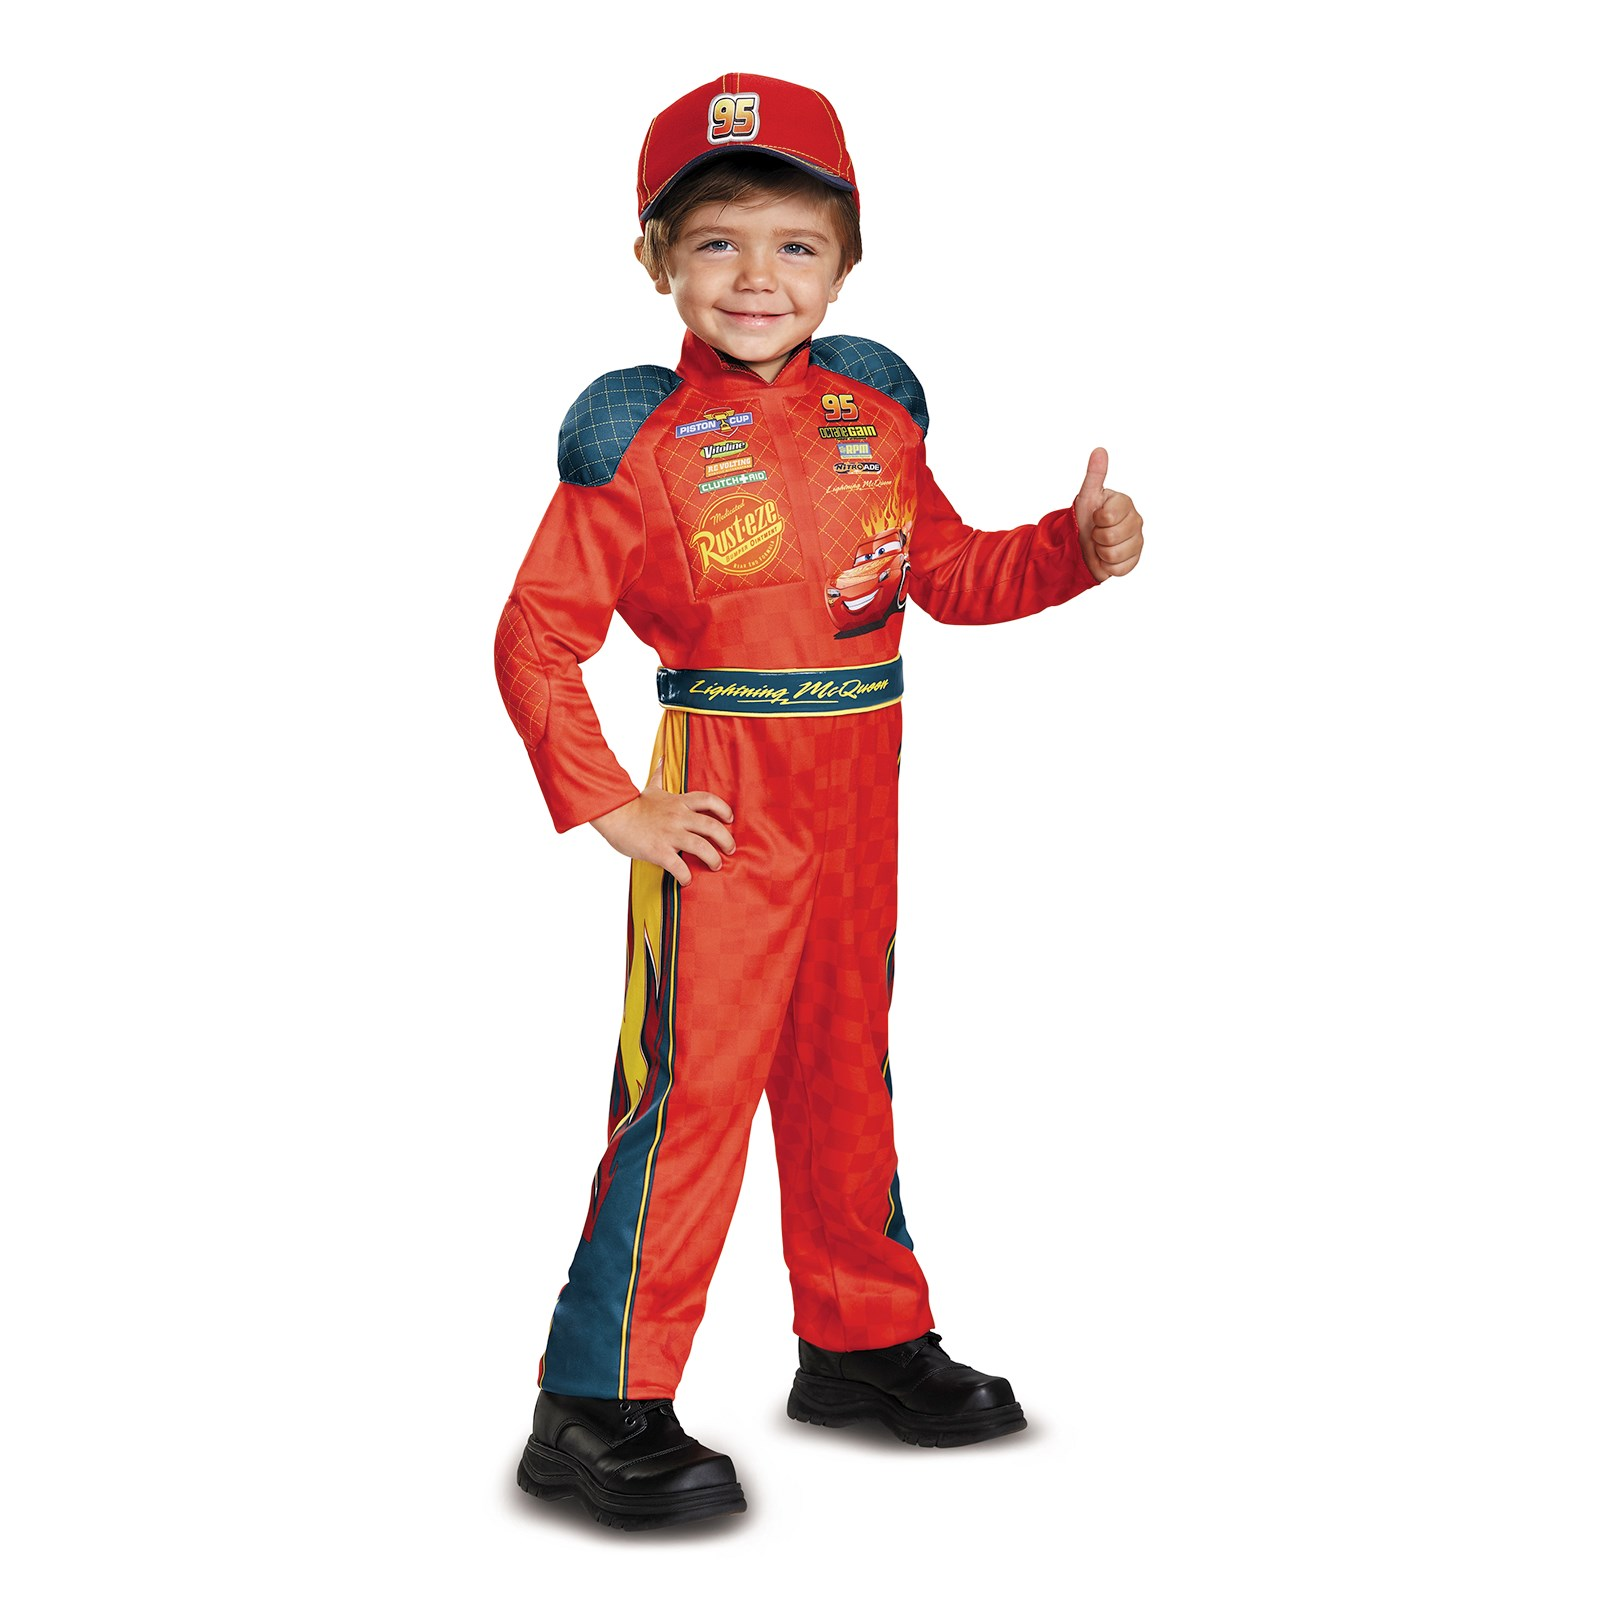 Cars 3 - Lightning Mcqueen Classic Toddler Costume | BuyCostumes.com